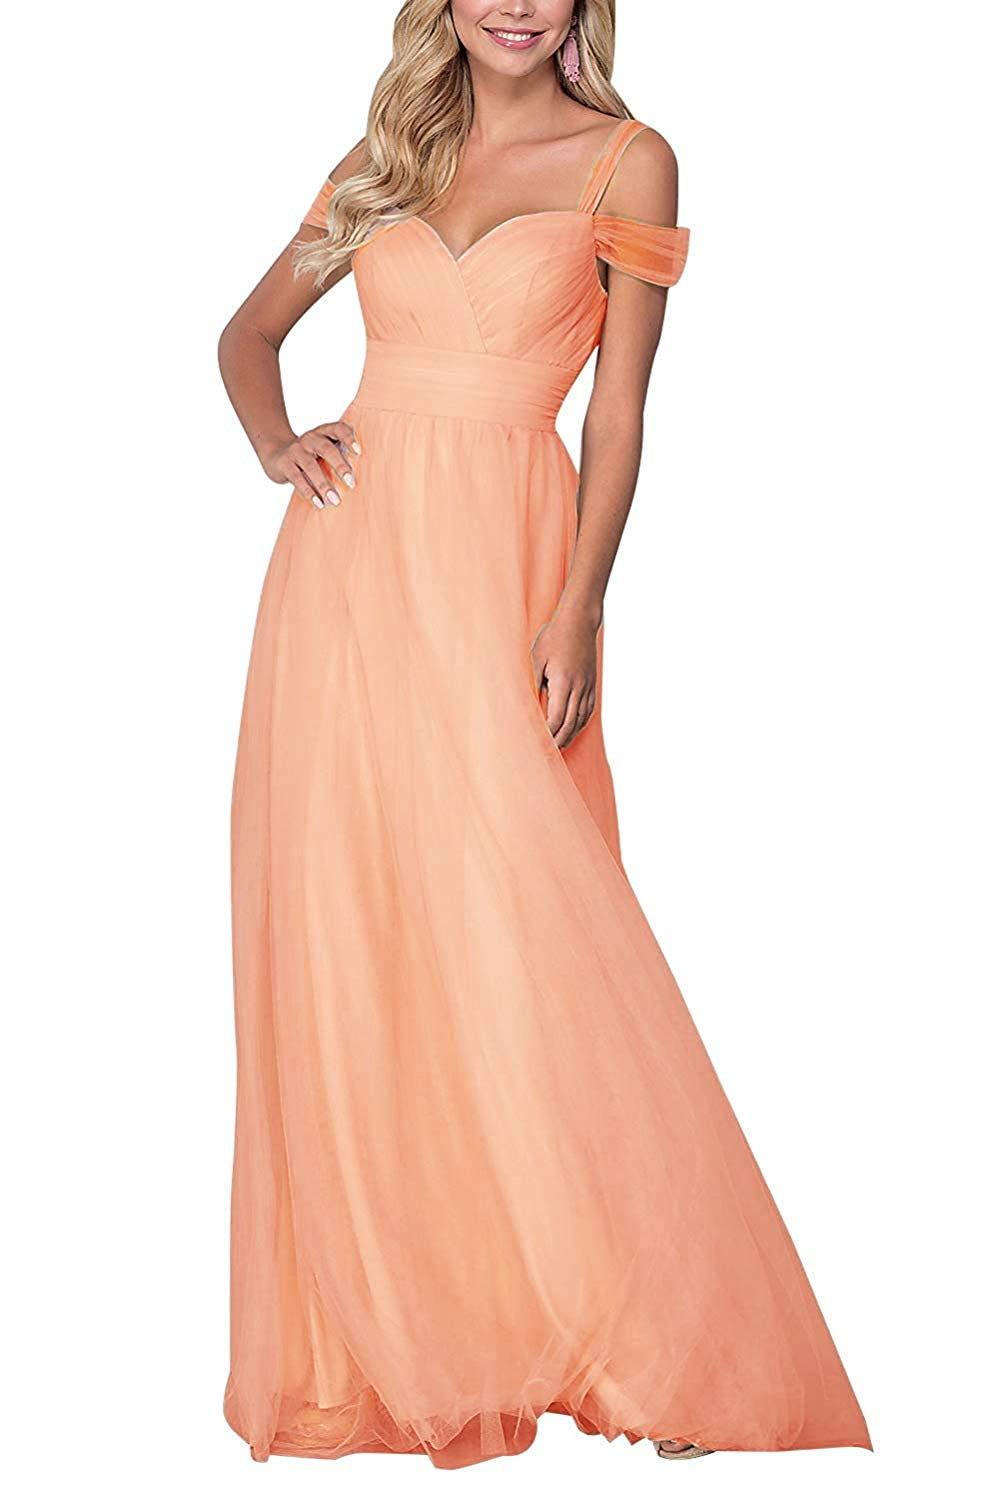 Coral liangjinsmkj Bridesmaid Dresses Long Off Shoulder Ruffled Tulle Spaghetti Strap Prom Gowns for Women